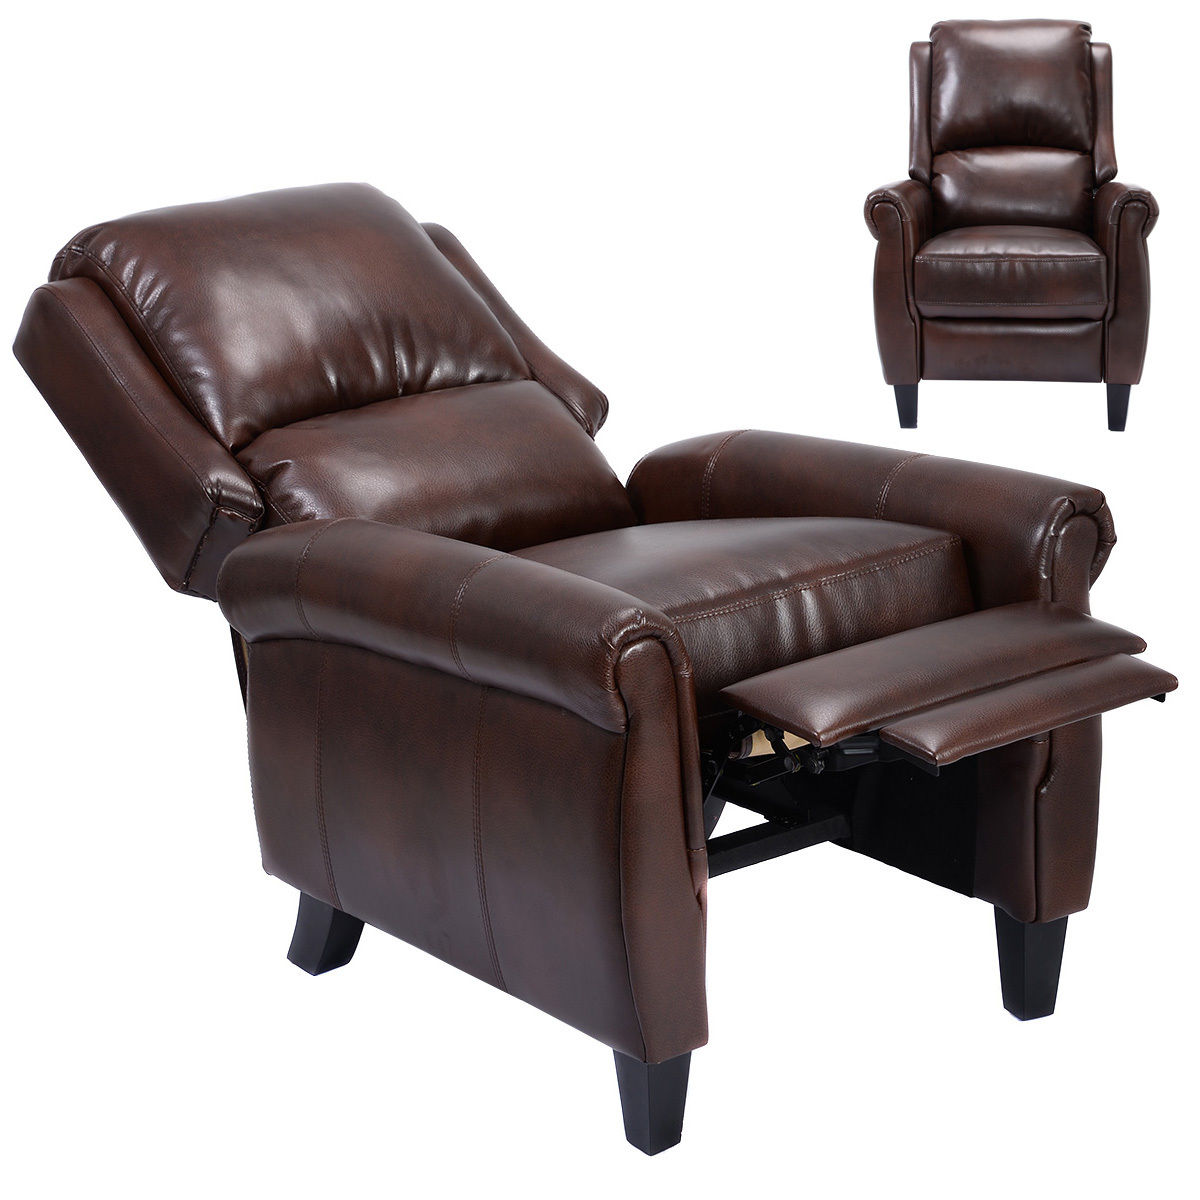 Costway Leather Recliner Accent Chair Push Back Living Room Home Furniture w/ Leg Rests